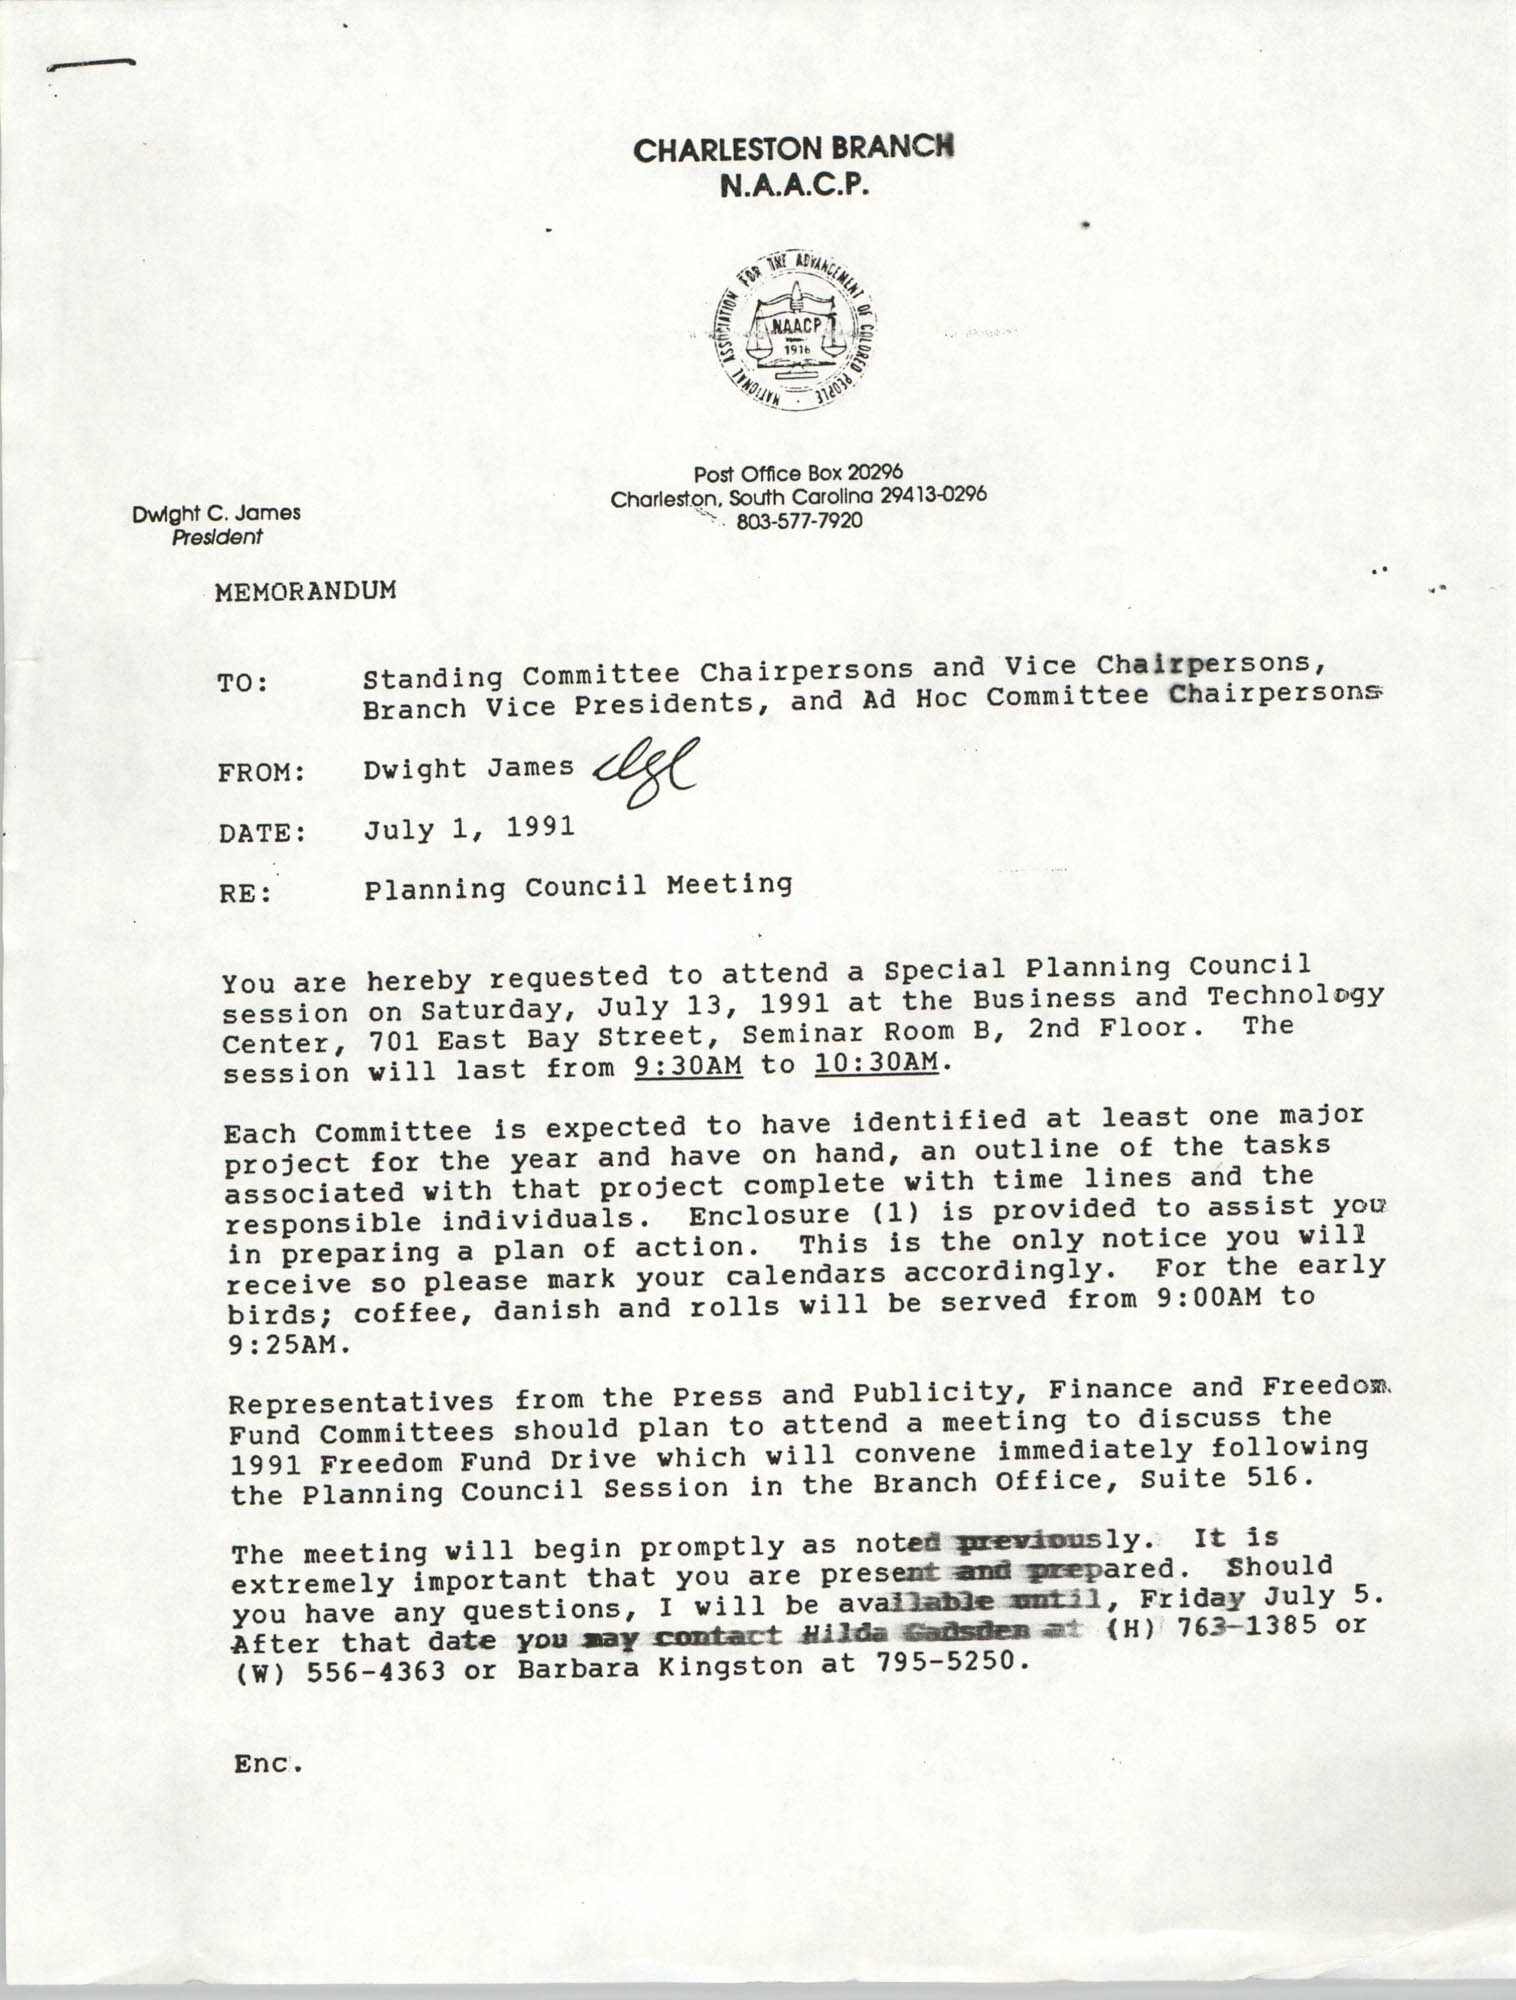 Charleston Branch of the NAACP Memorandum, July 1, 1991